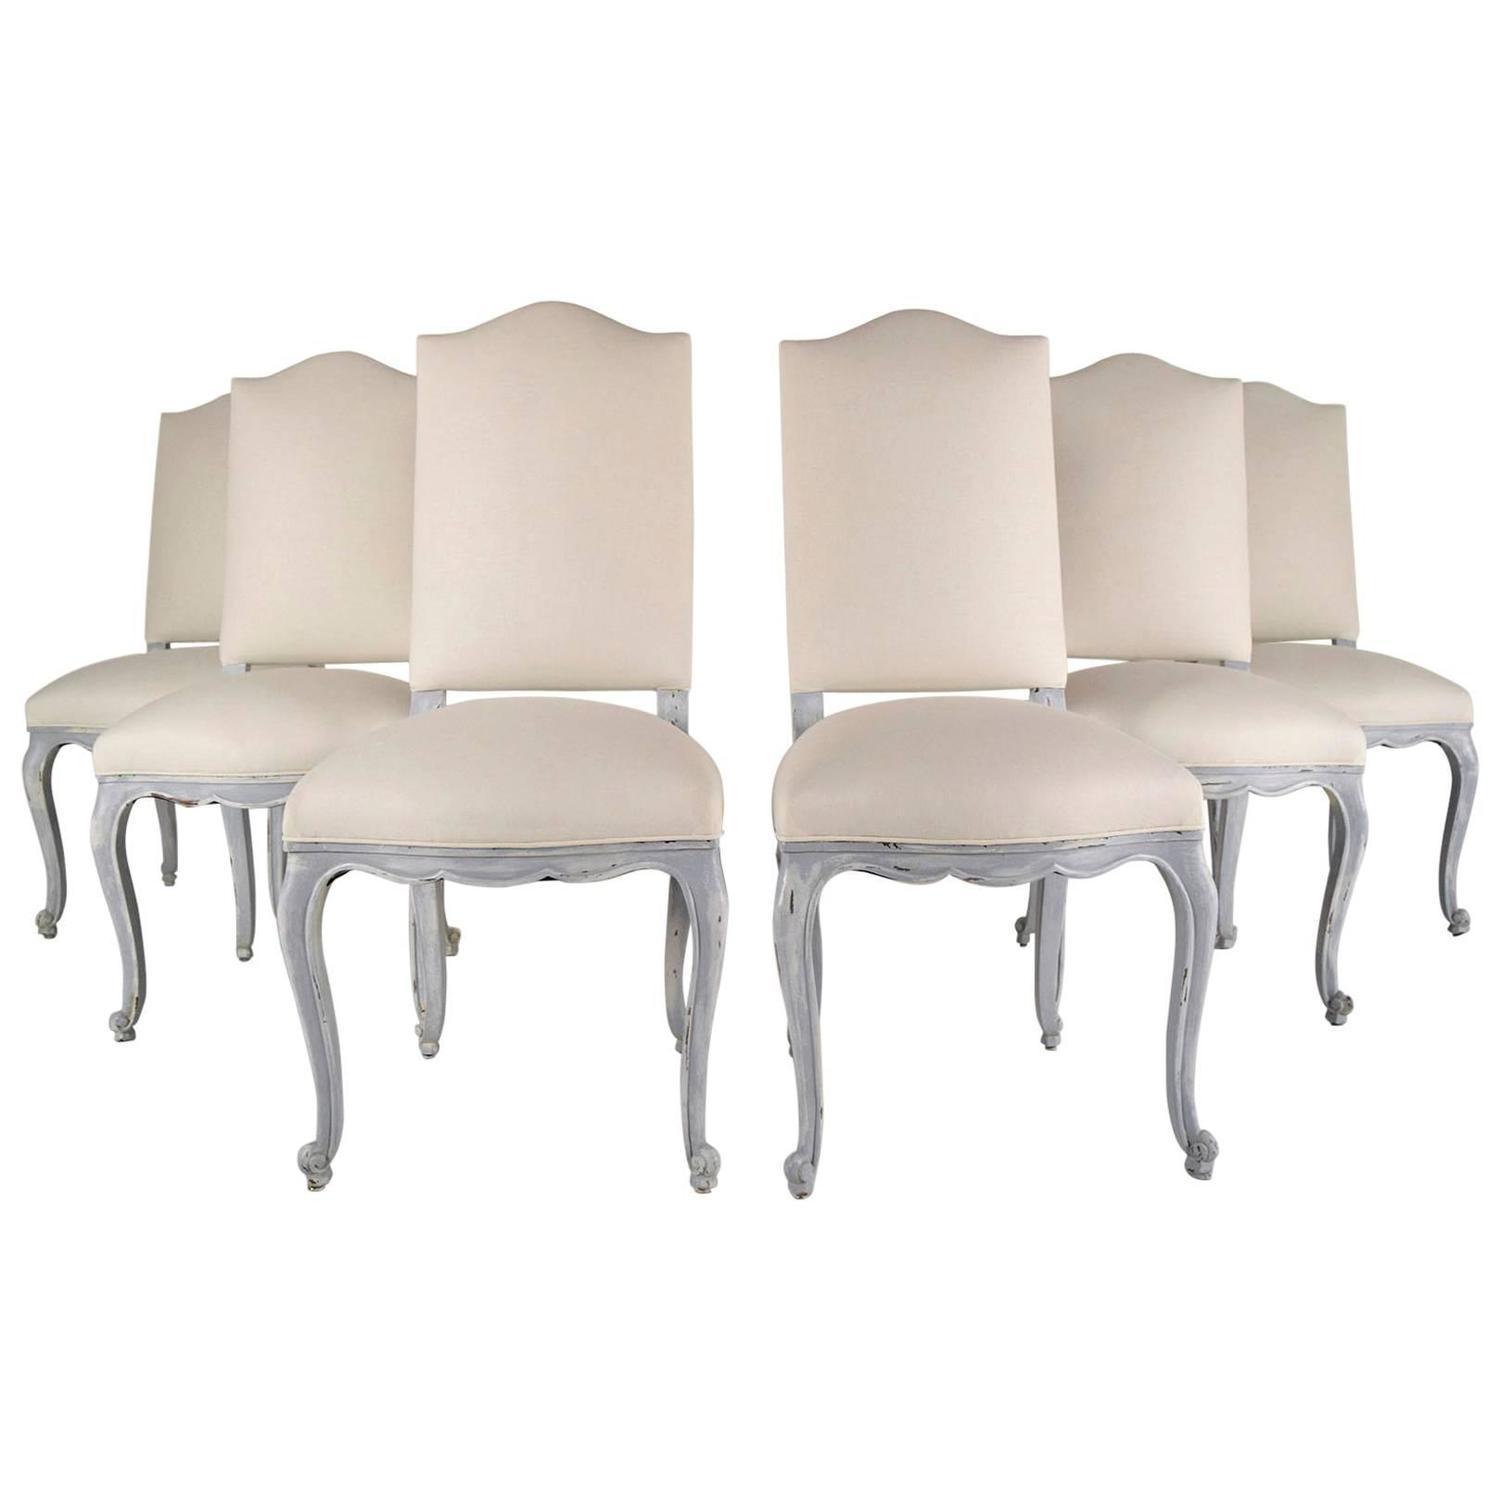 Louis xv dining chair - Image Of French Antique Louis Xv Dining Chairs Set Of 6